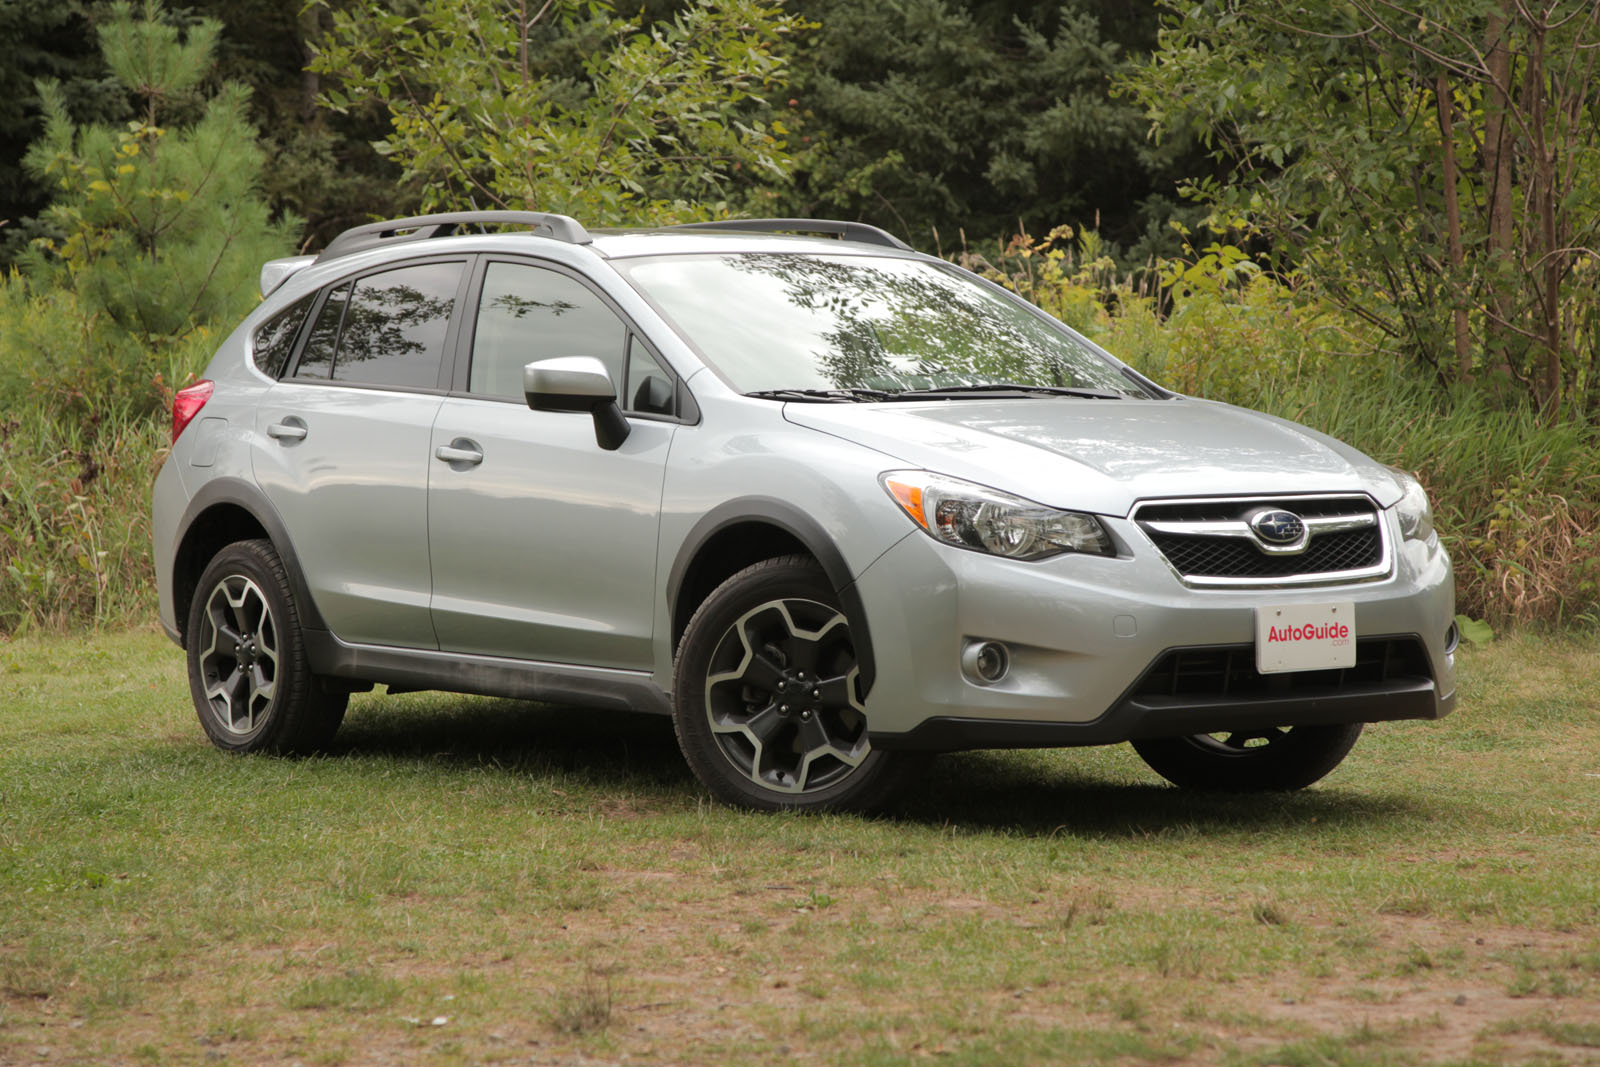 2015 subaru xv crosstrek review - autoguide news